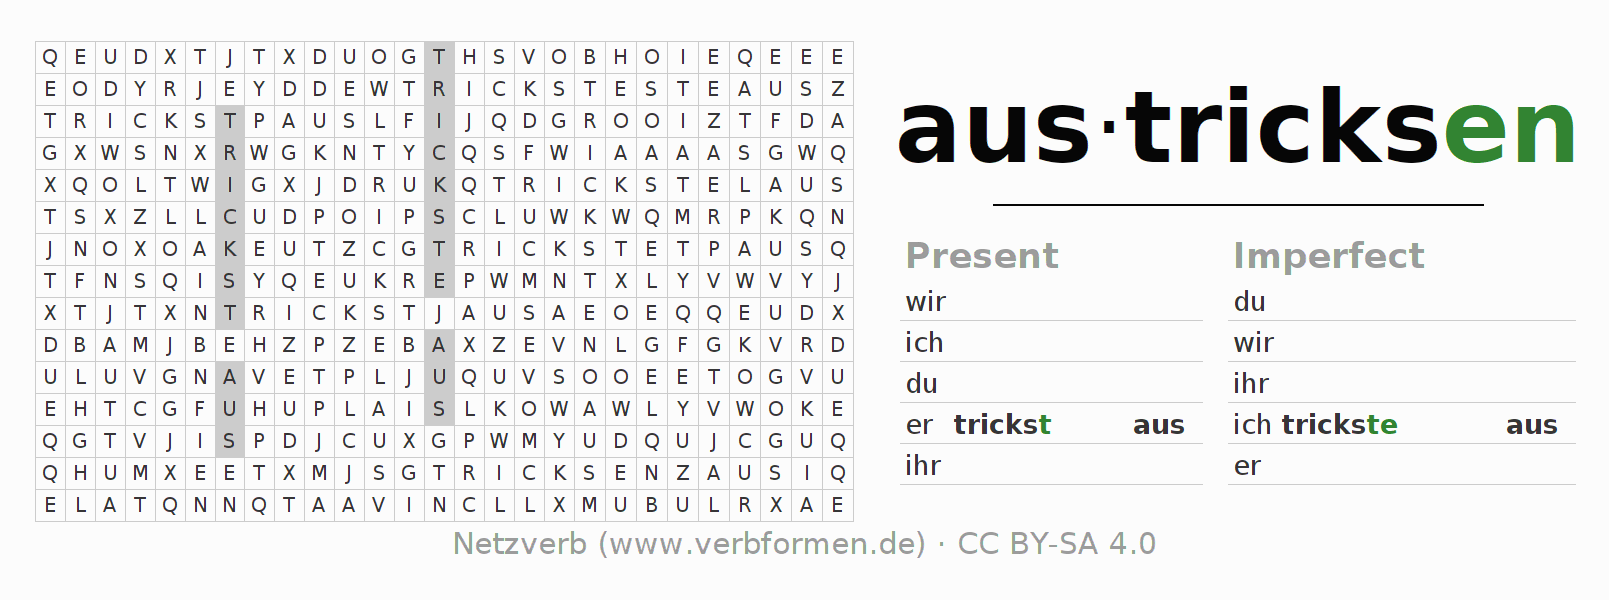 Word search puzzle for the conjugation of the verb austricksen